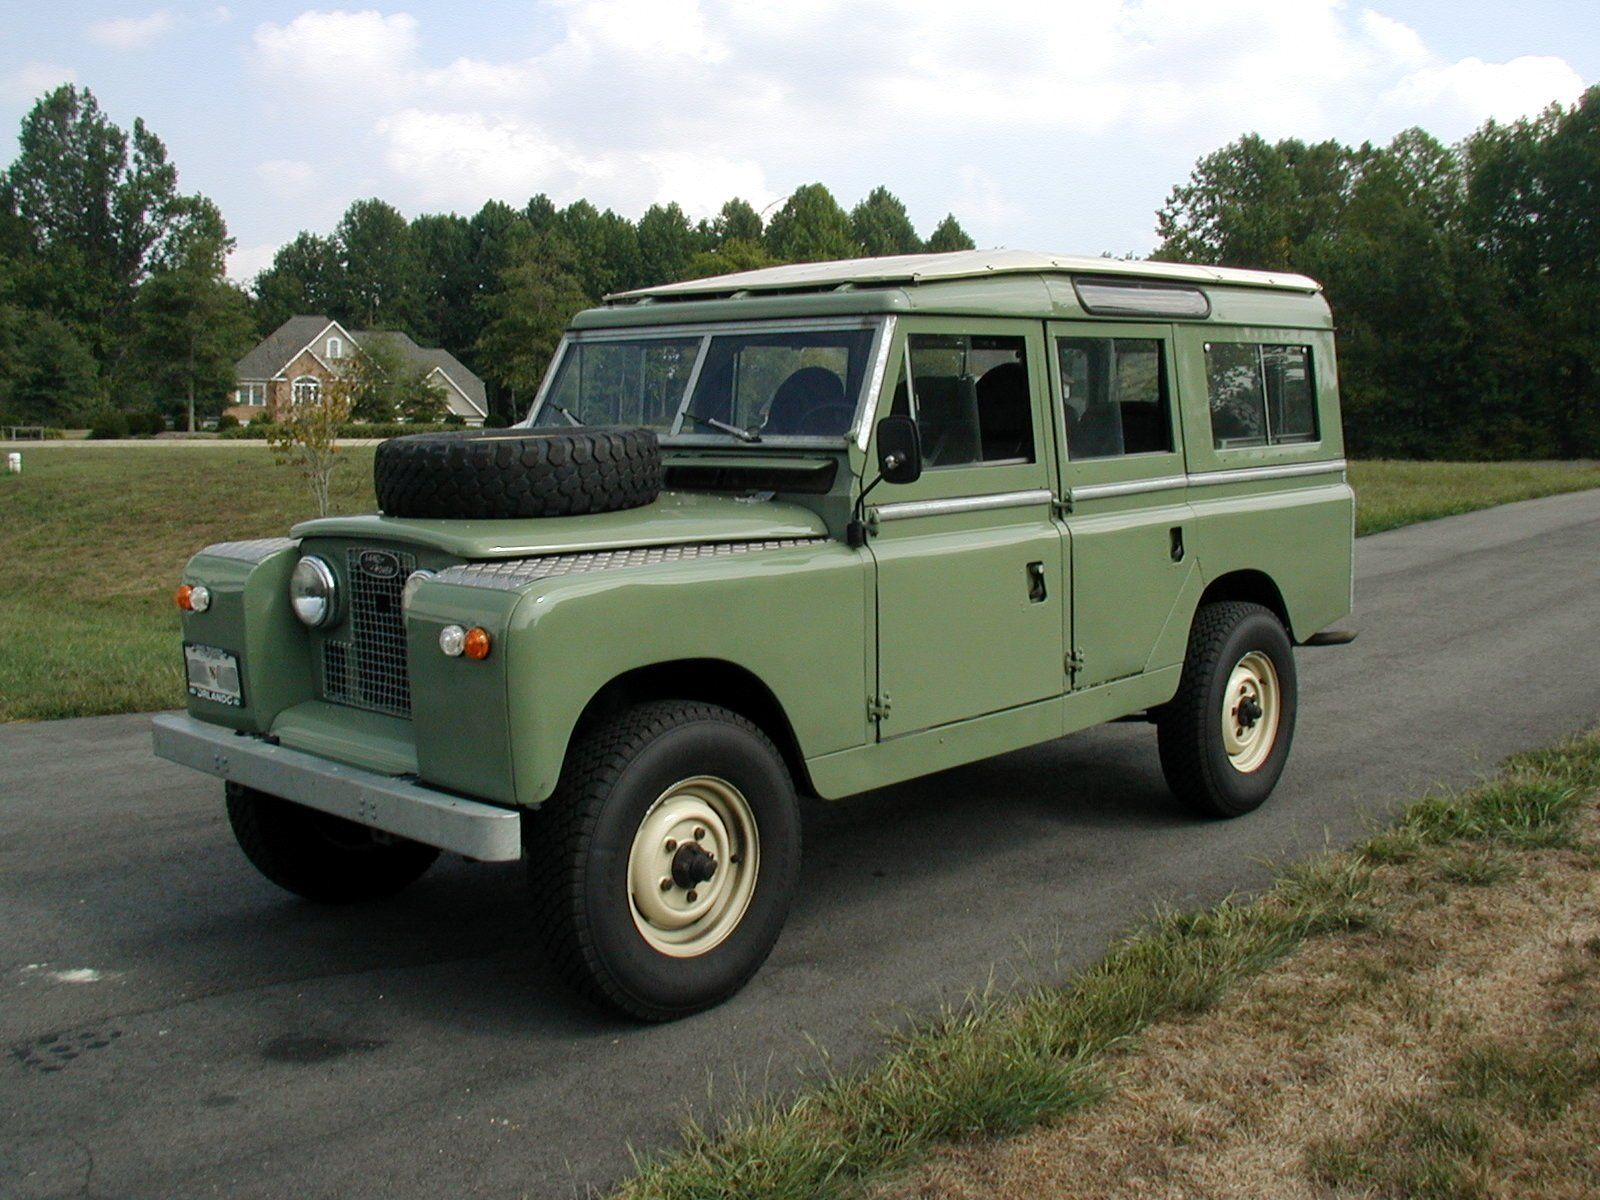 LandRoverIIALWB Land Rover Series the free